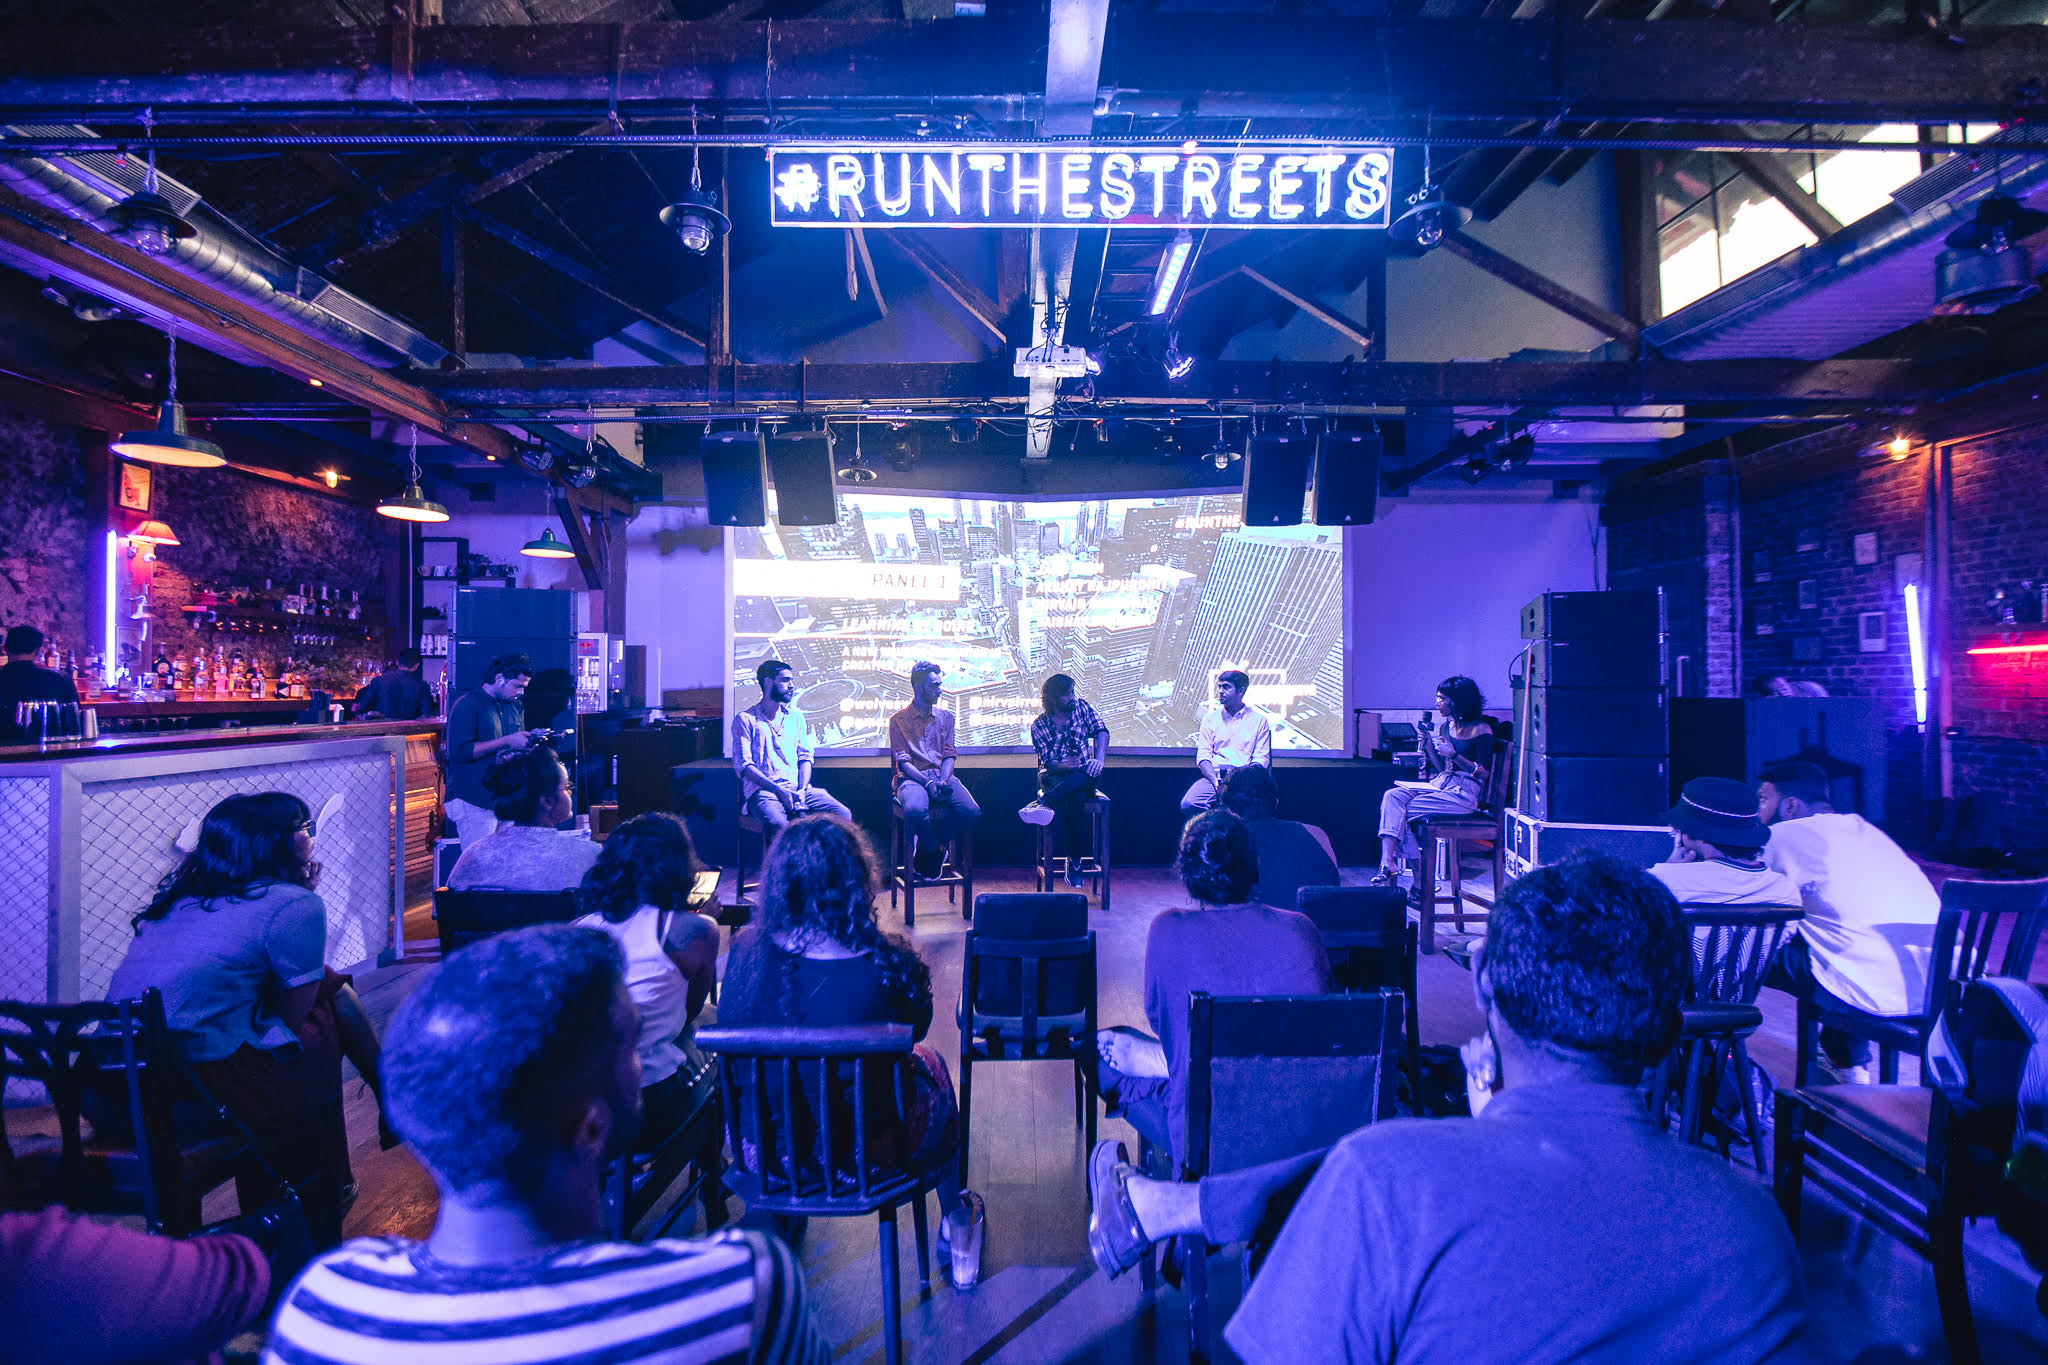 PUMA Celebrates New Era of Entrepreneurs & Hustlers with #RunTheStreets Series